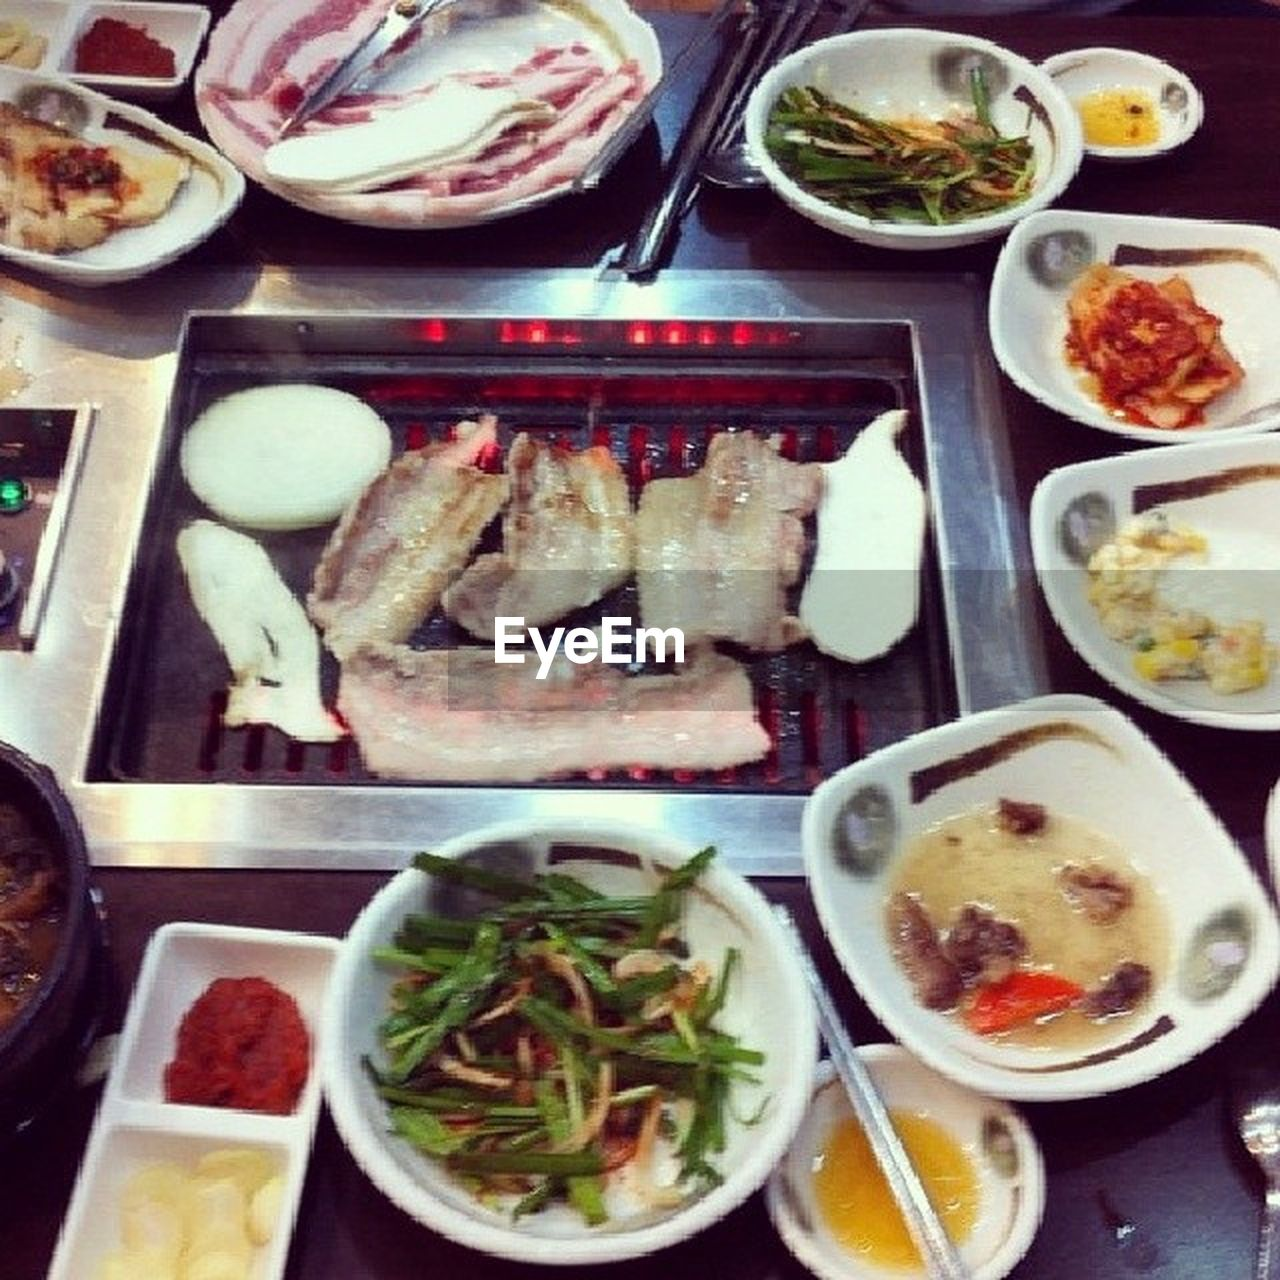 food, food and drink, plate, freshness, ready-to-eat, table, bowl, no people, salad, variation, choice, indoors, healthy eating, meal, meat, spring roll, close-up, day